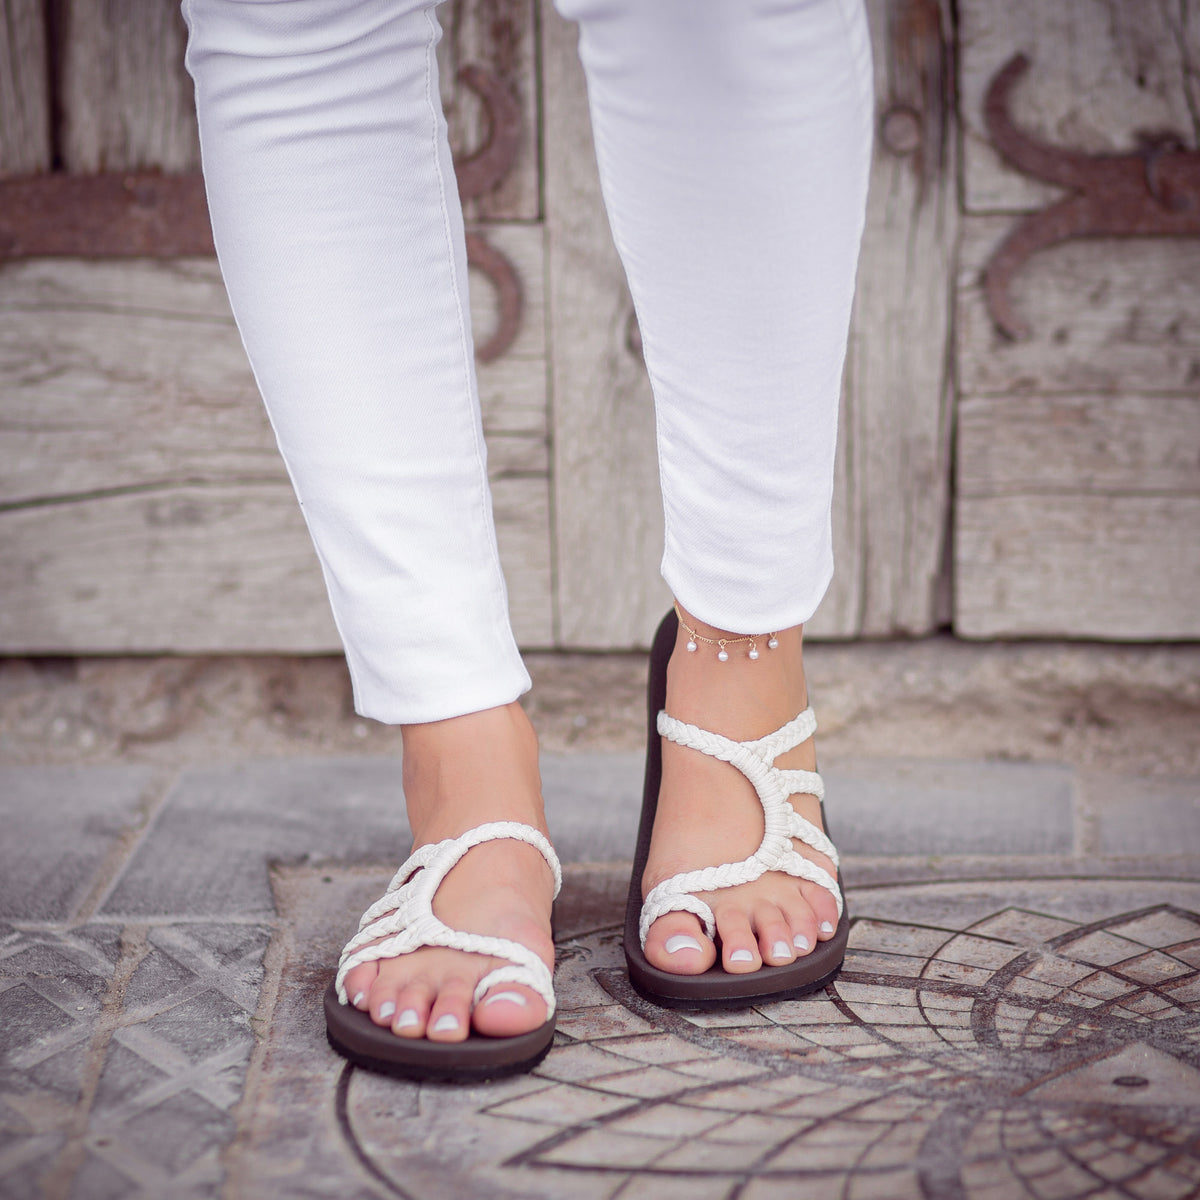 Relief Flip Flops for Women with Arch Support | Pearl